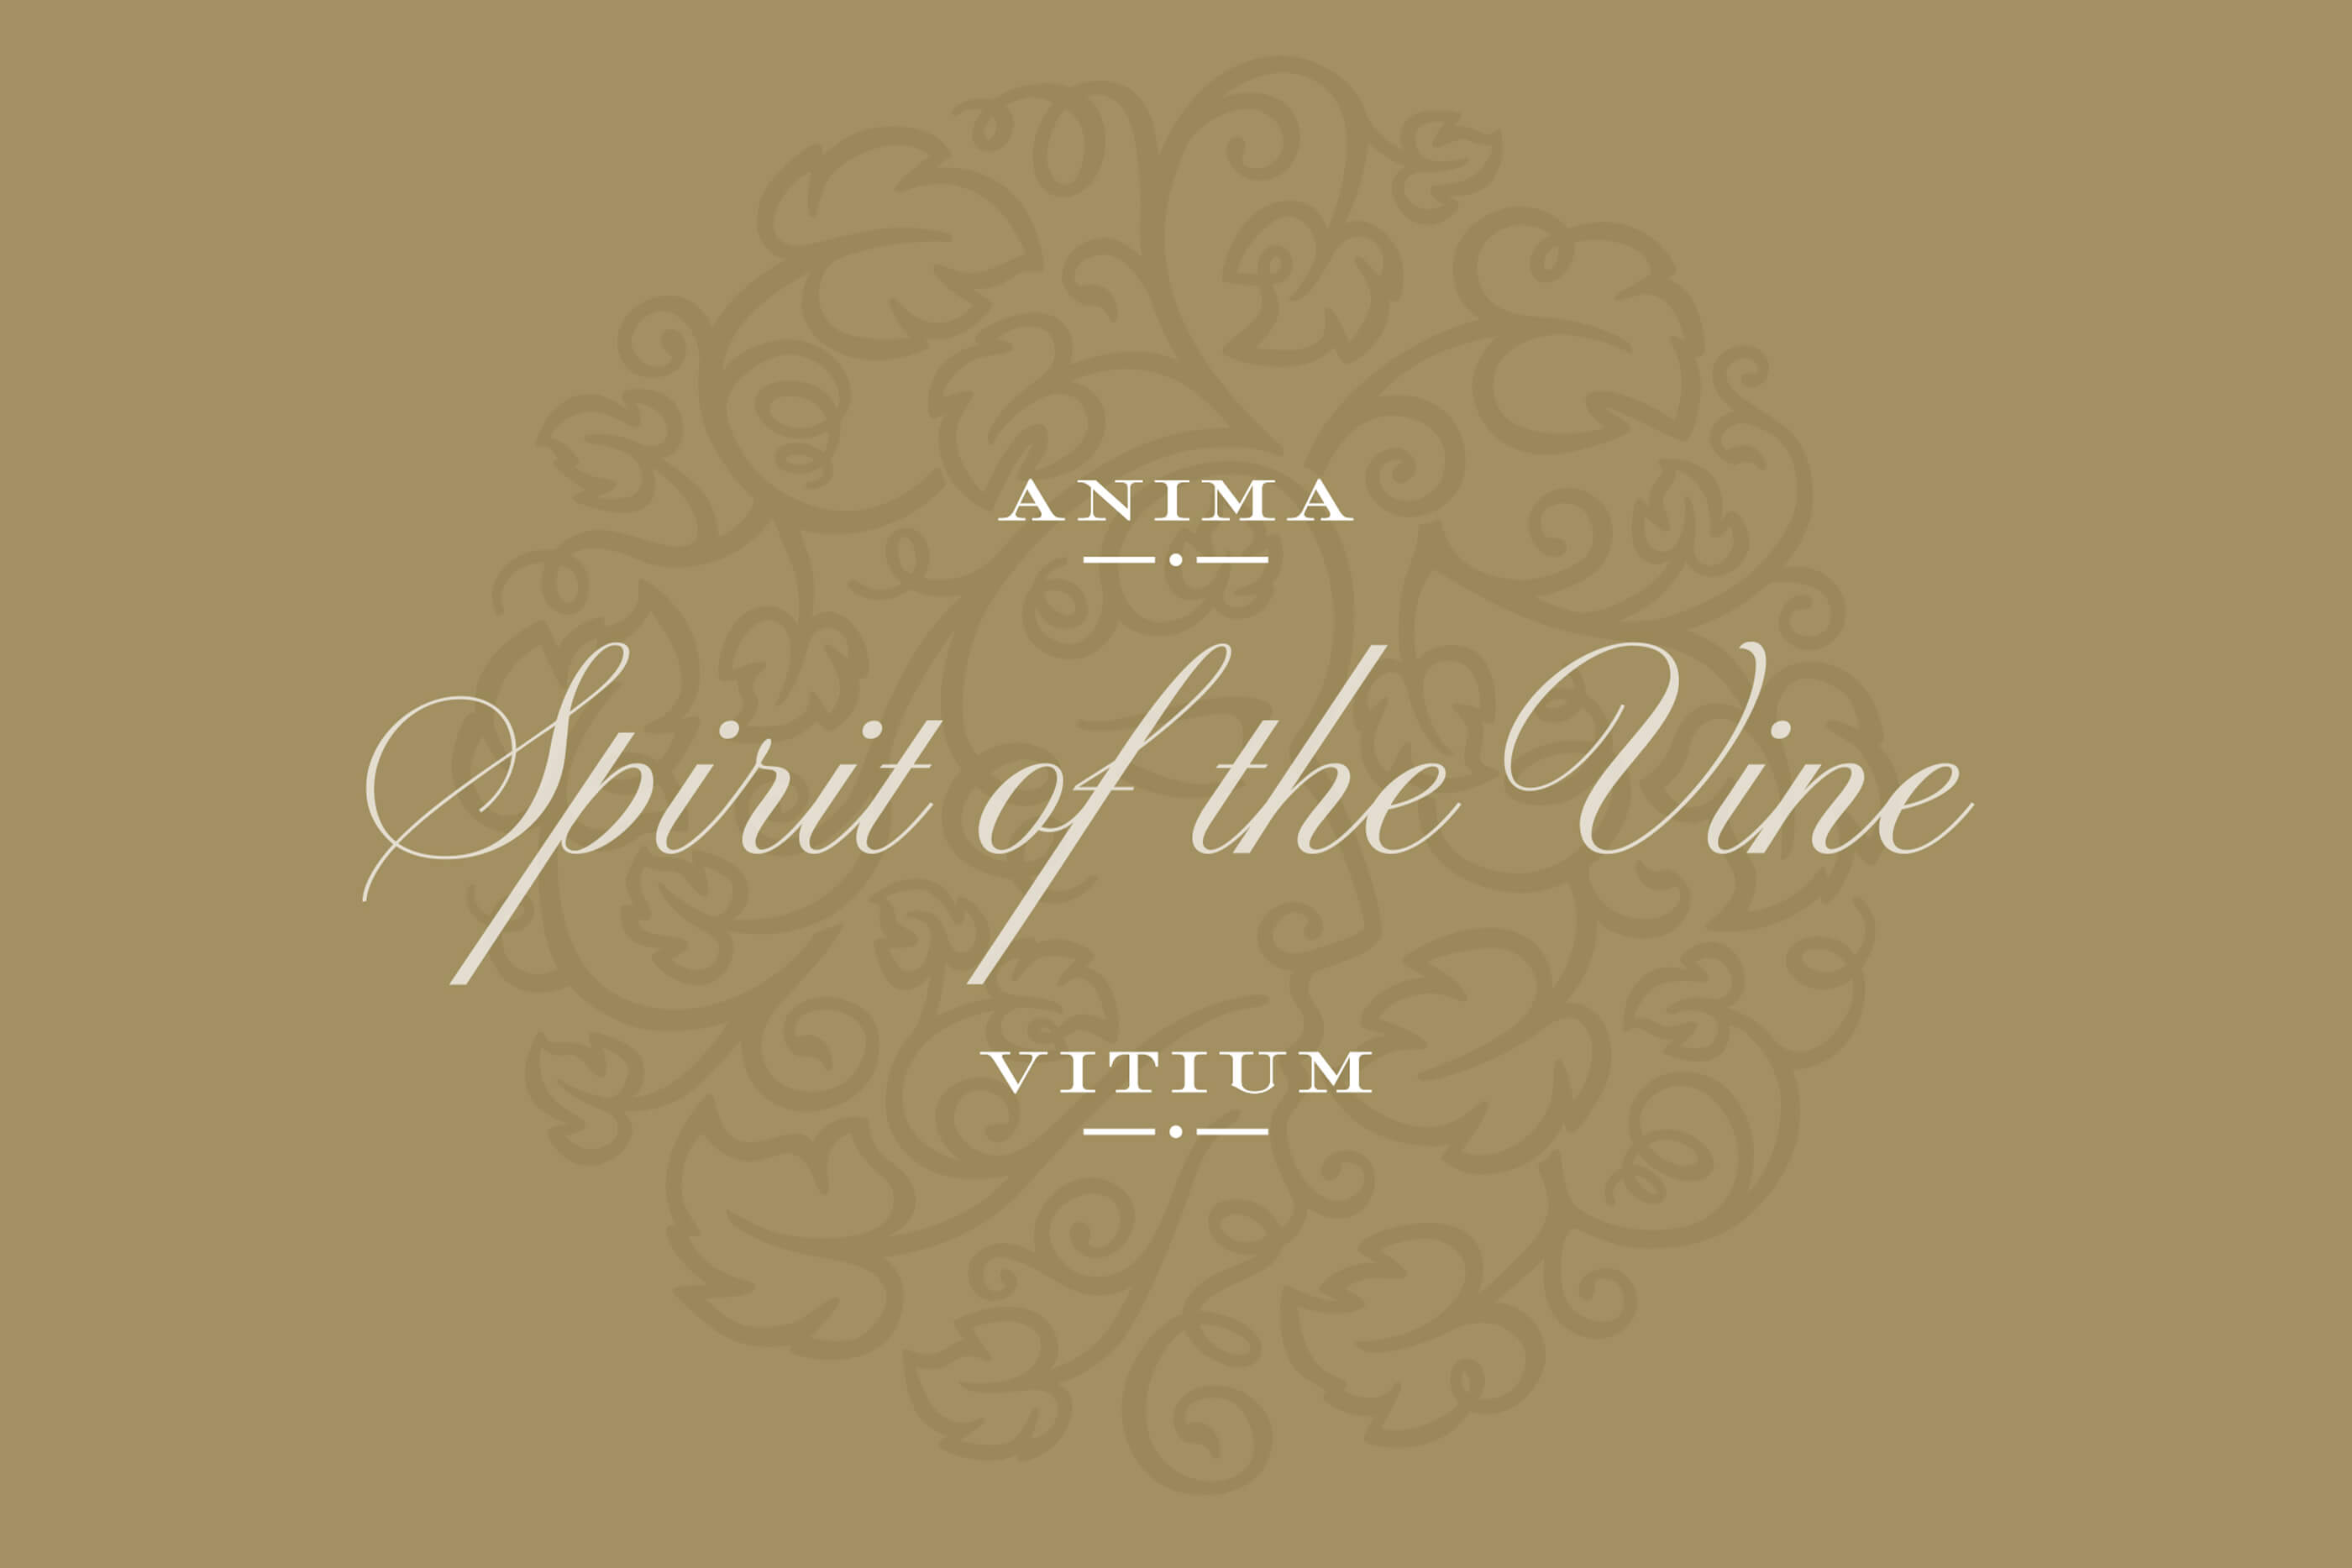 atticus_wines_spirit_of_the_vines